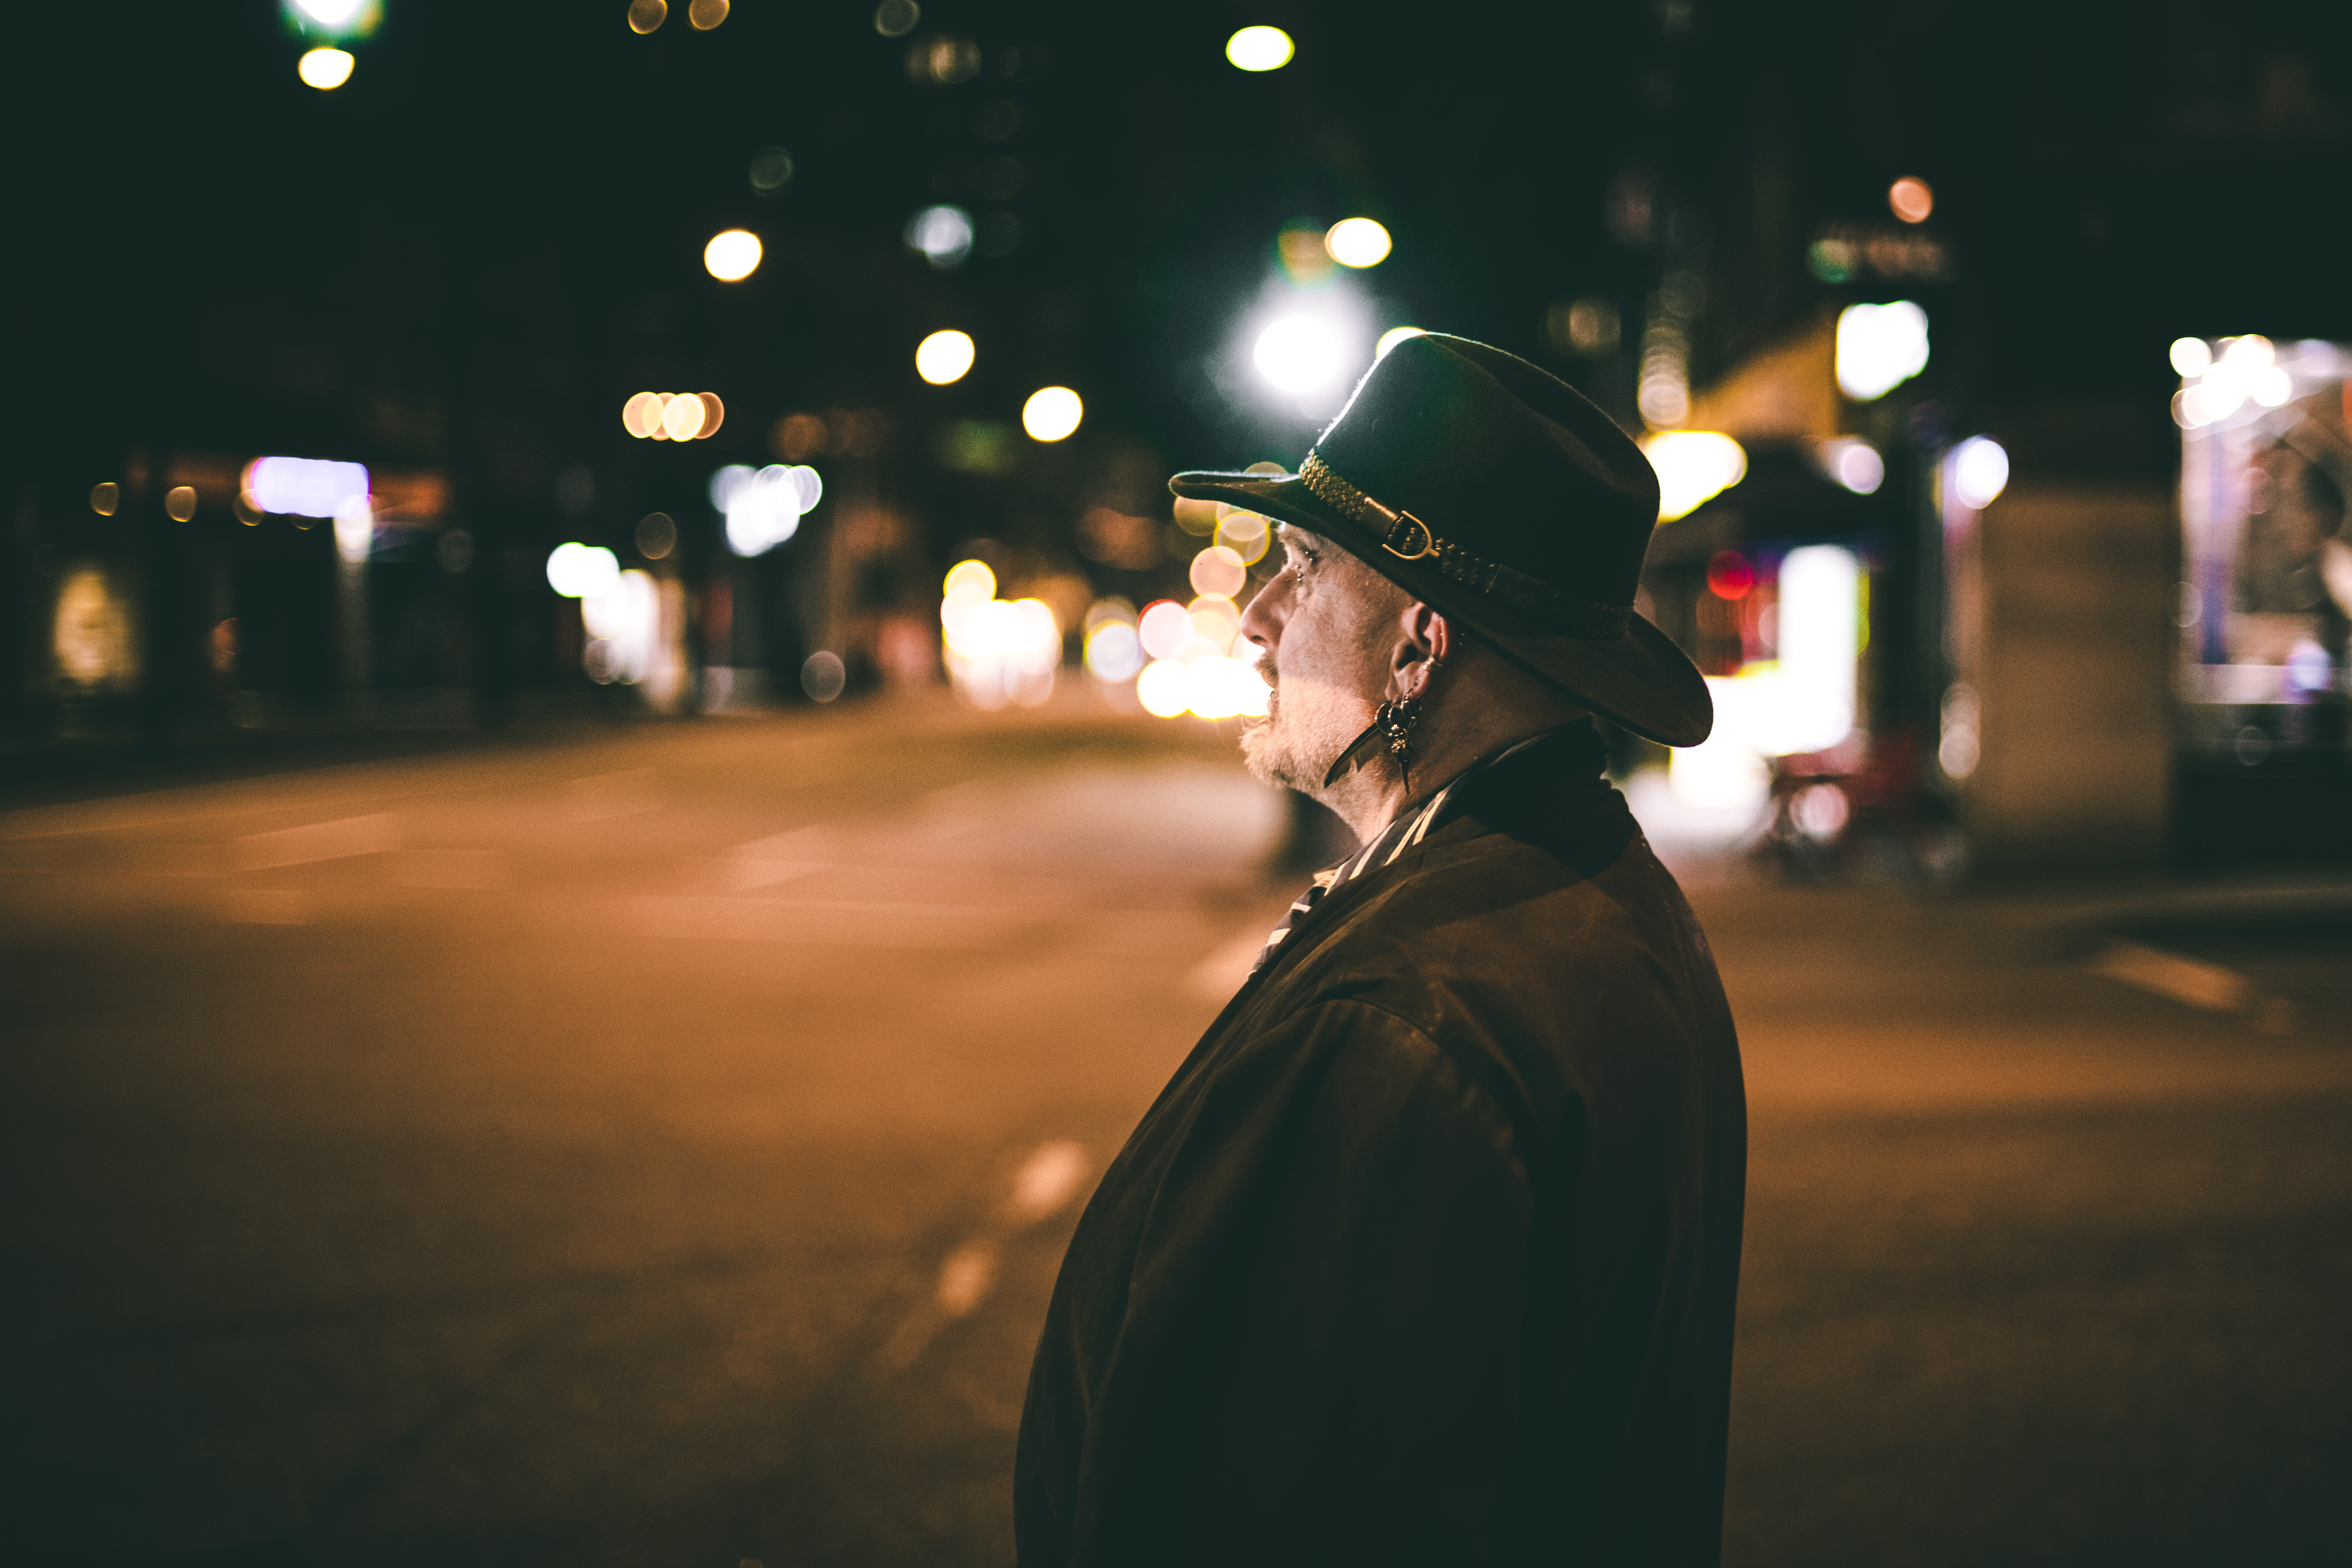 man standing on roadside at night time